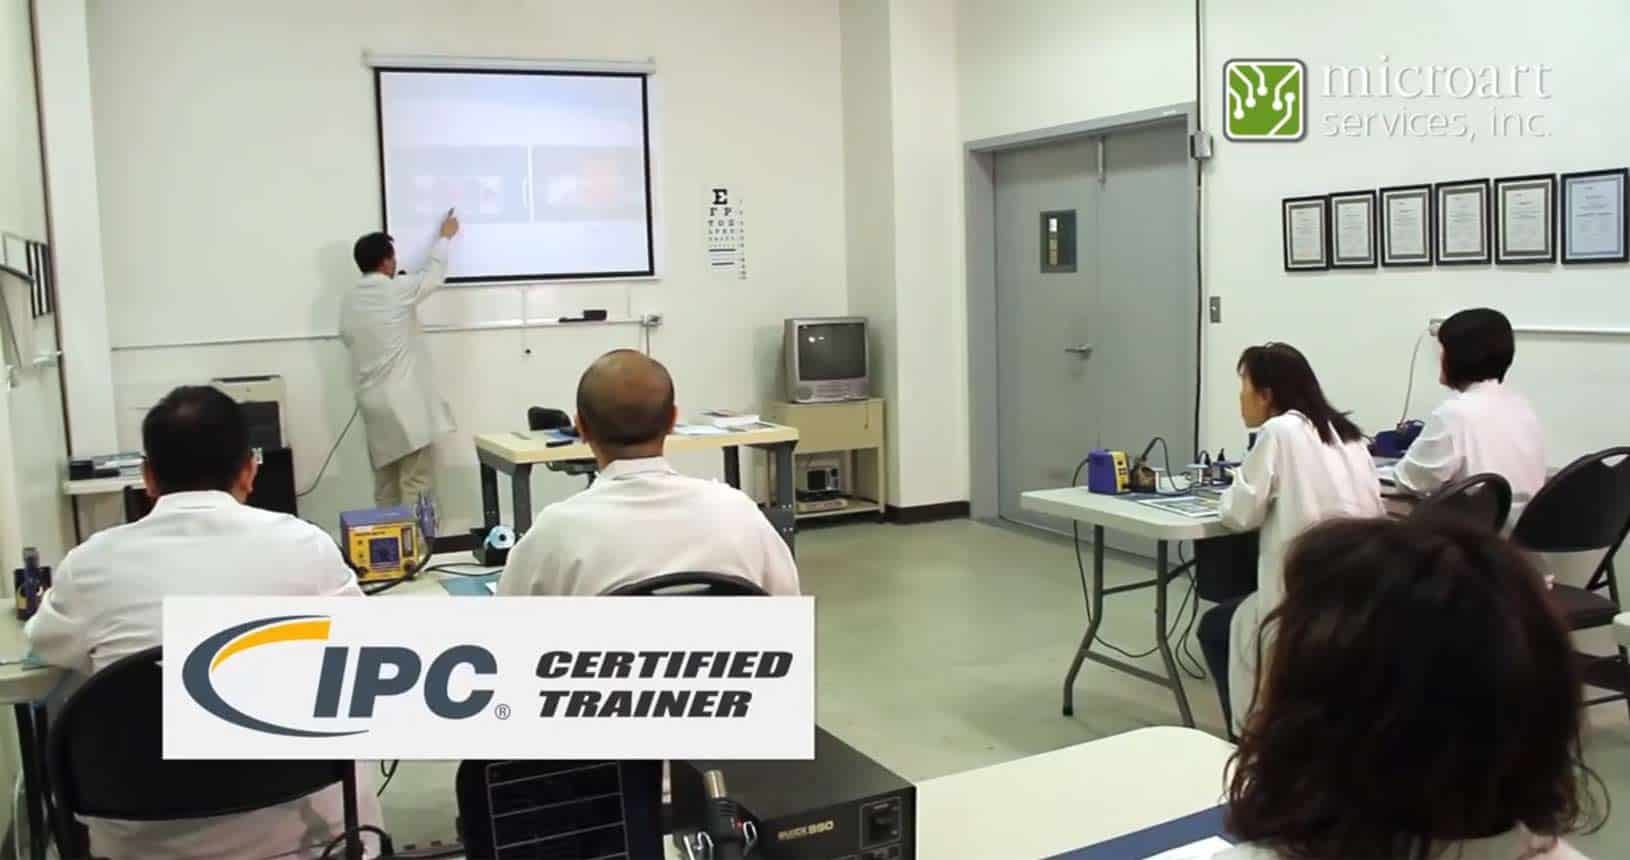 Services From Microart Include Pcb Design Assembly Prototyping Printed Circuit Board Box Build Ipc Training